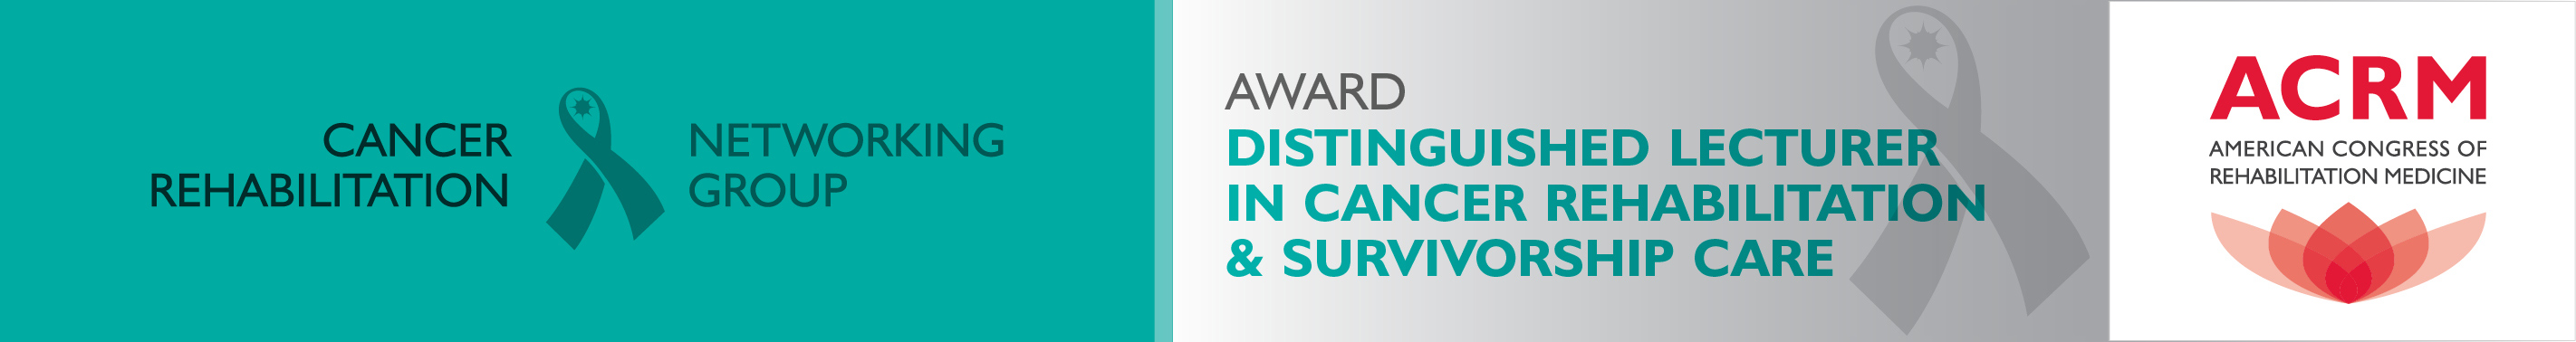 Cancer Rehabilitation Networking Group Distinguished Lecturer Award